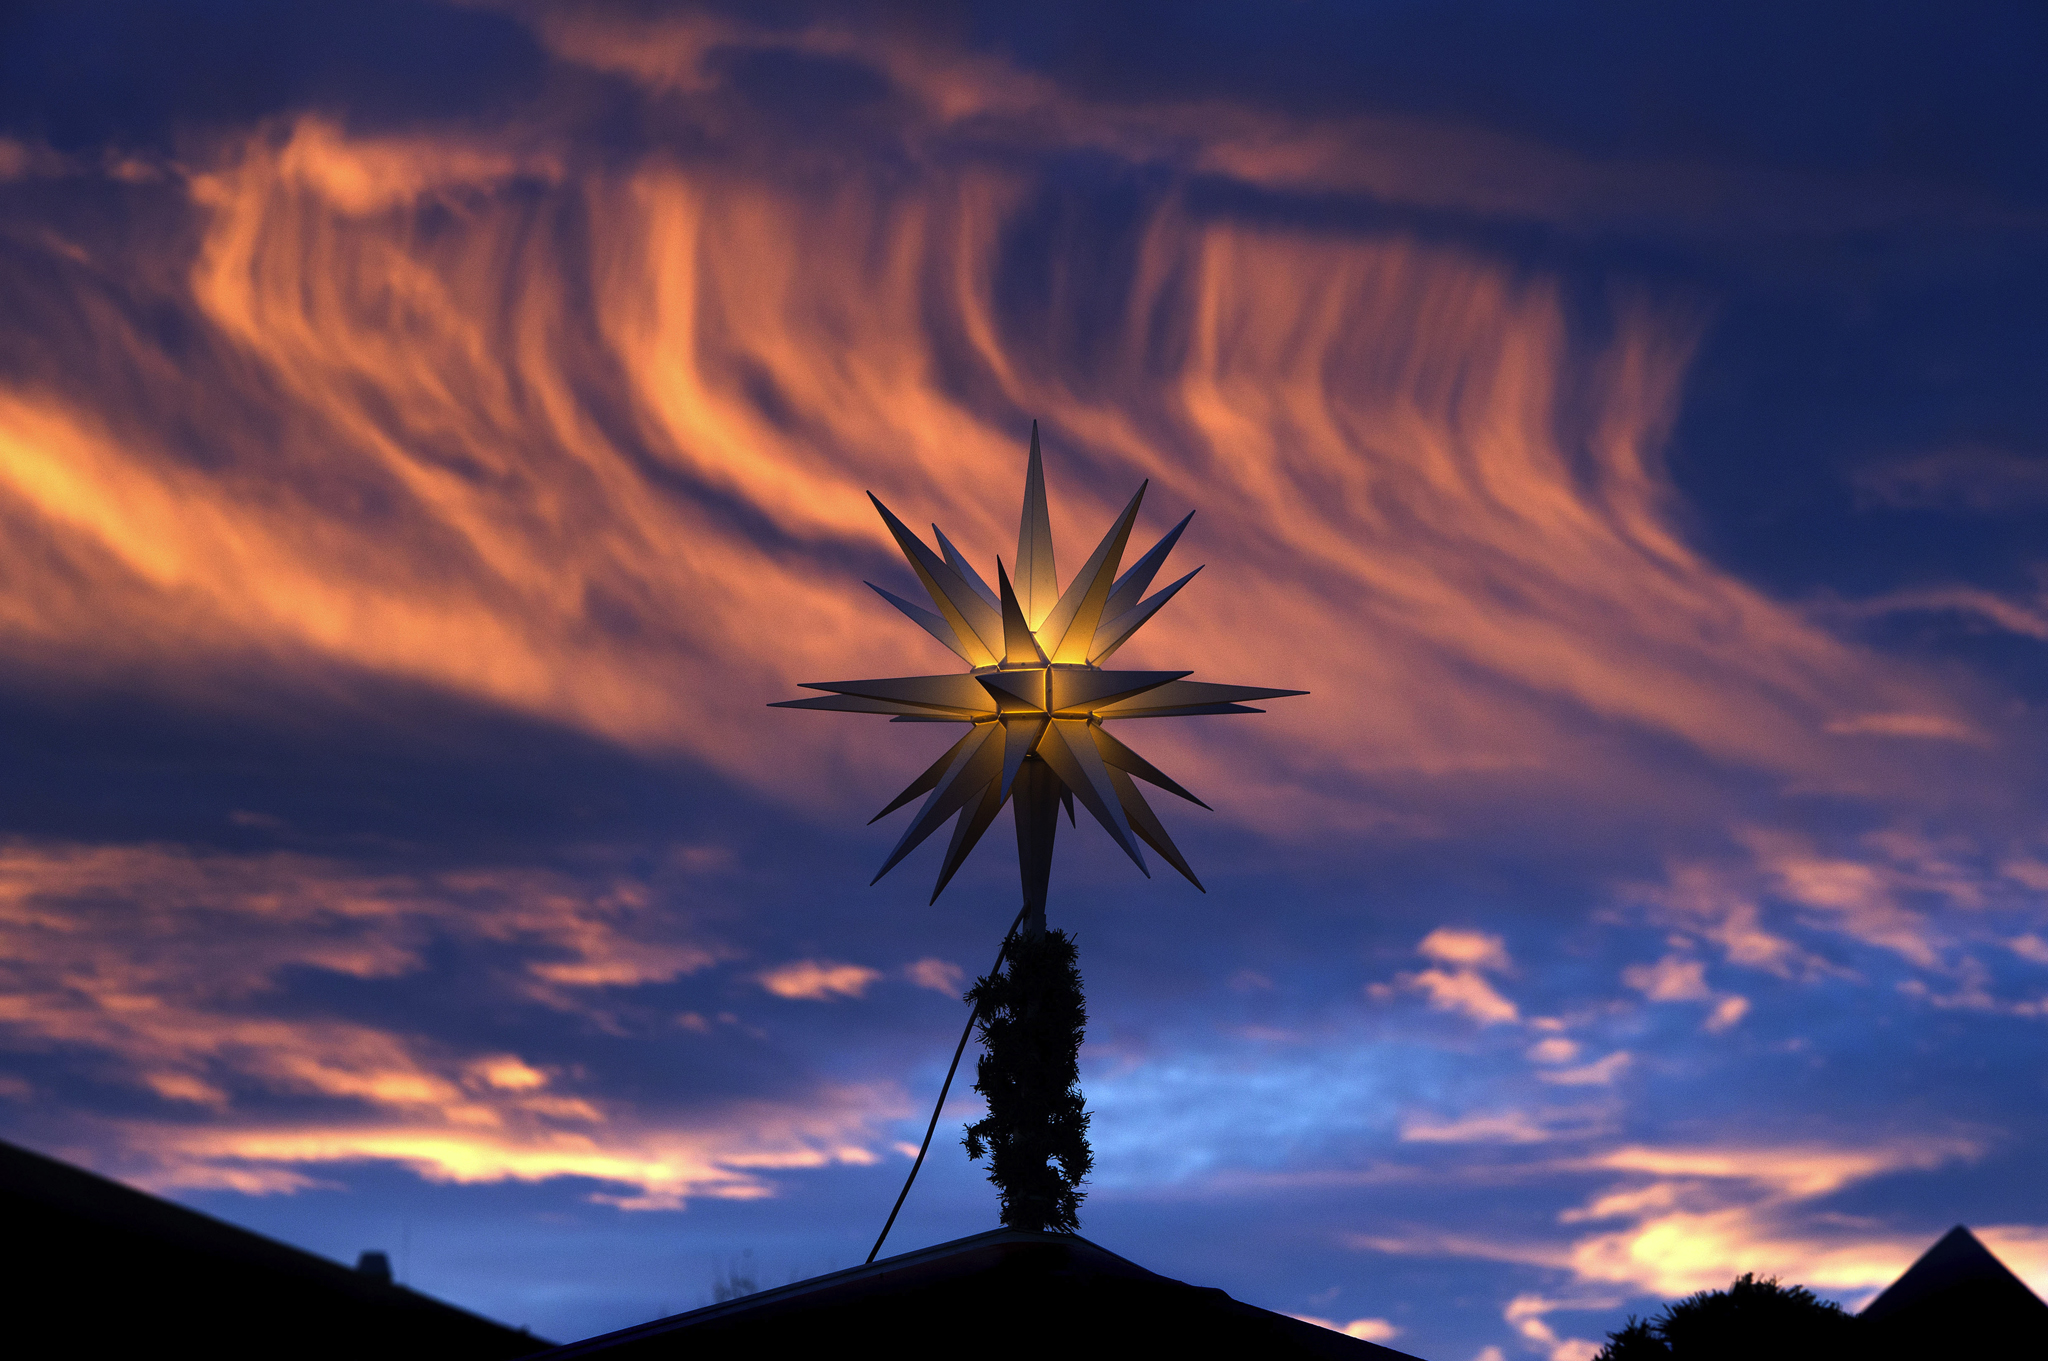 A Christmas star on top of a sales booth is pictured against the colorful morning sky at the Christmas market in Dresden, eastern Germany.